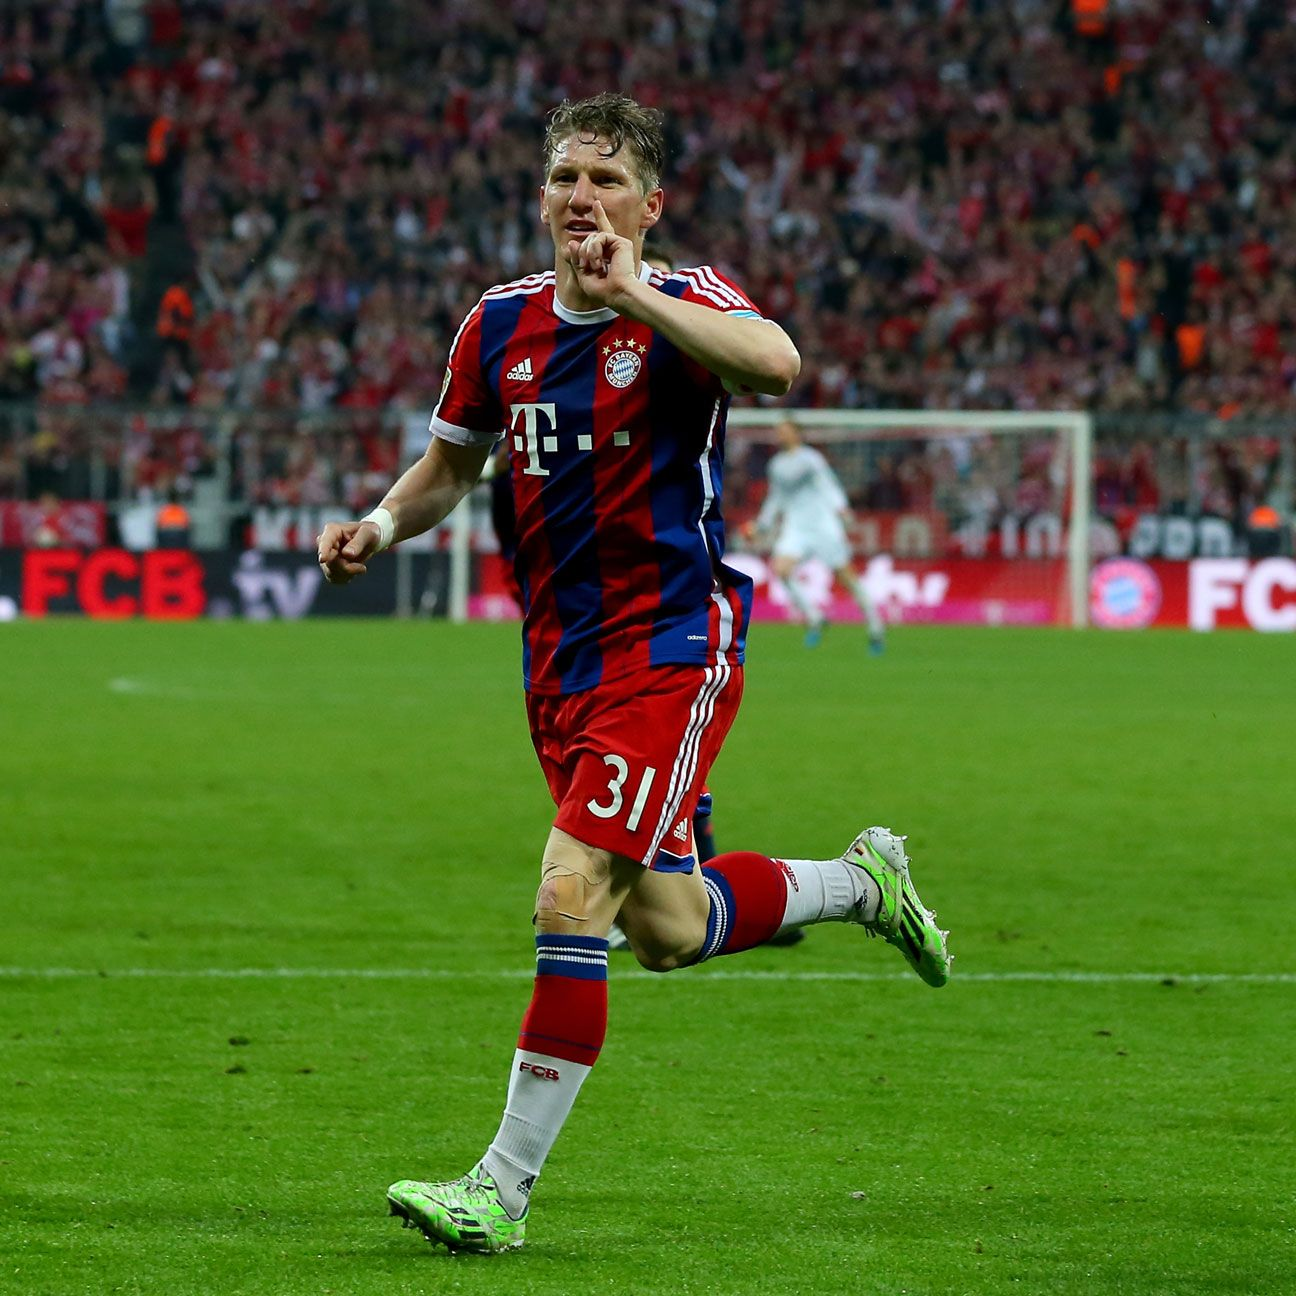 Bastian Schweinsteiger's goal put Bayern on the cusp of clinching another Bundesliga title.